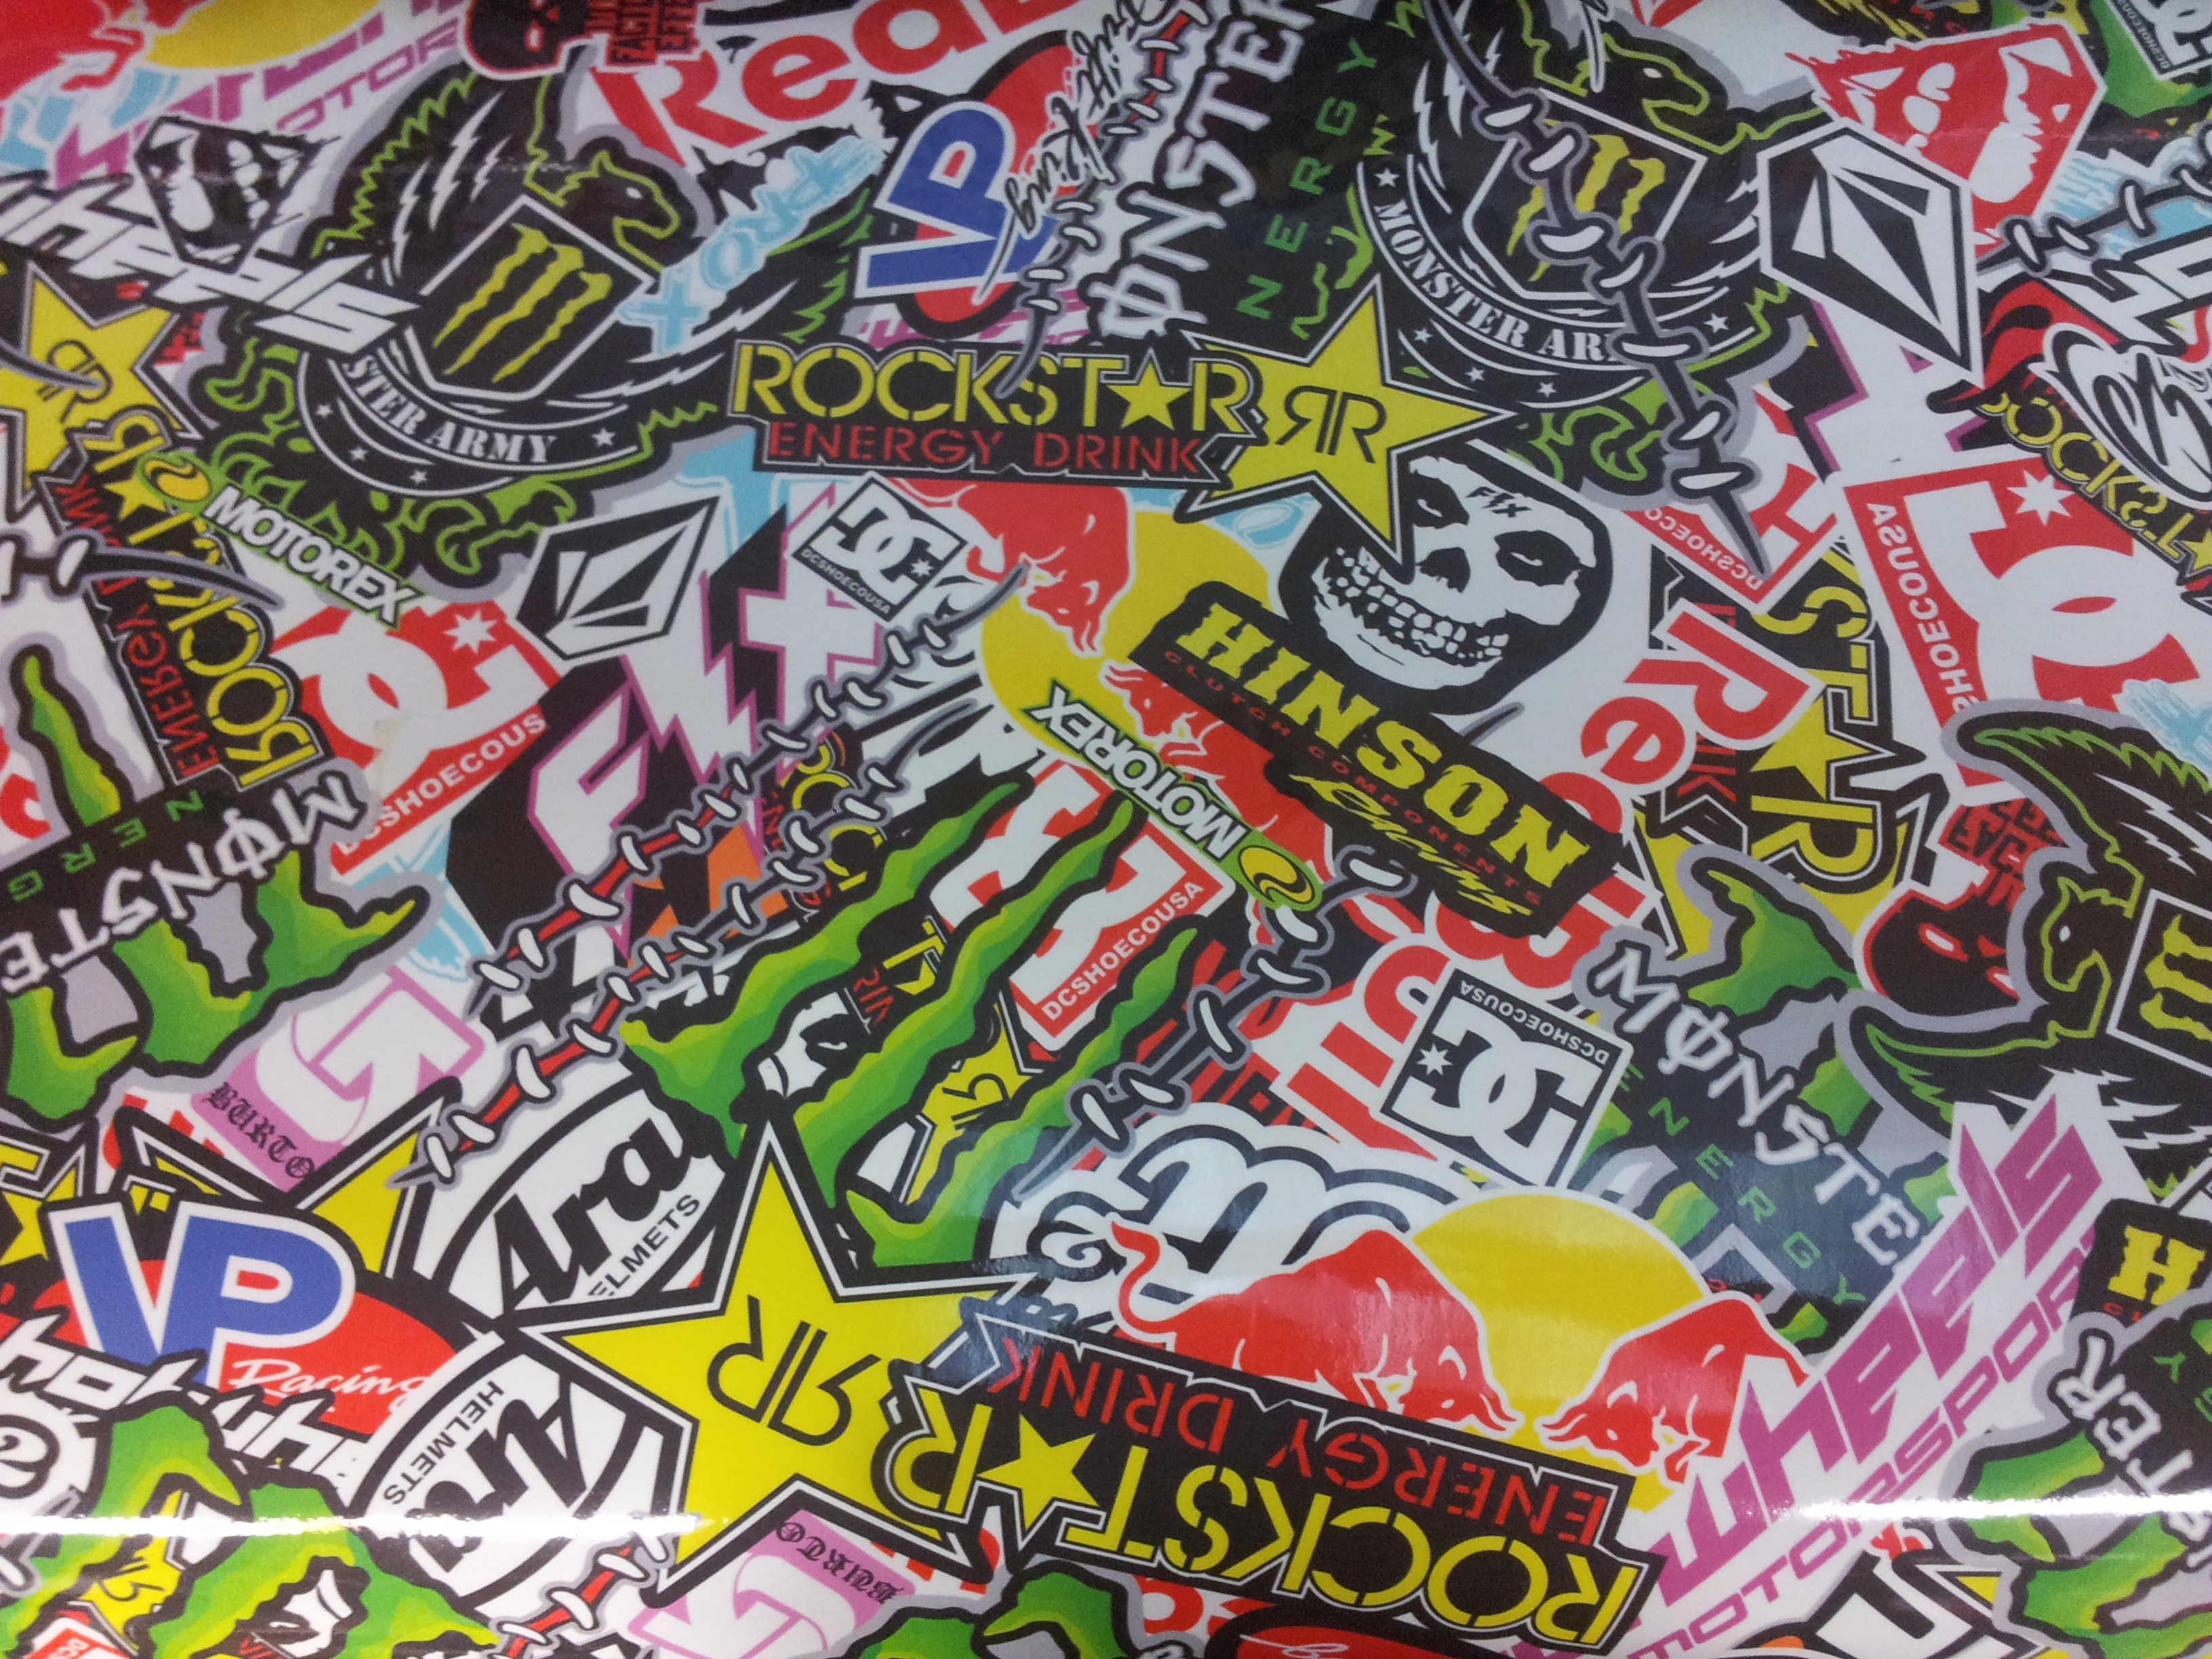 Sticker bomb car design - Order Now At Www Carwrapdirect Com For Fast Shipping To Ireland The Uk And Europe Perfect For Car Wrapping Bike Wrapping Interior Trim Spoilers And